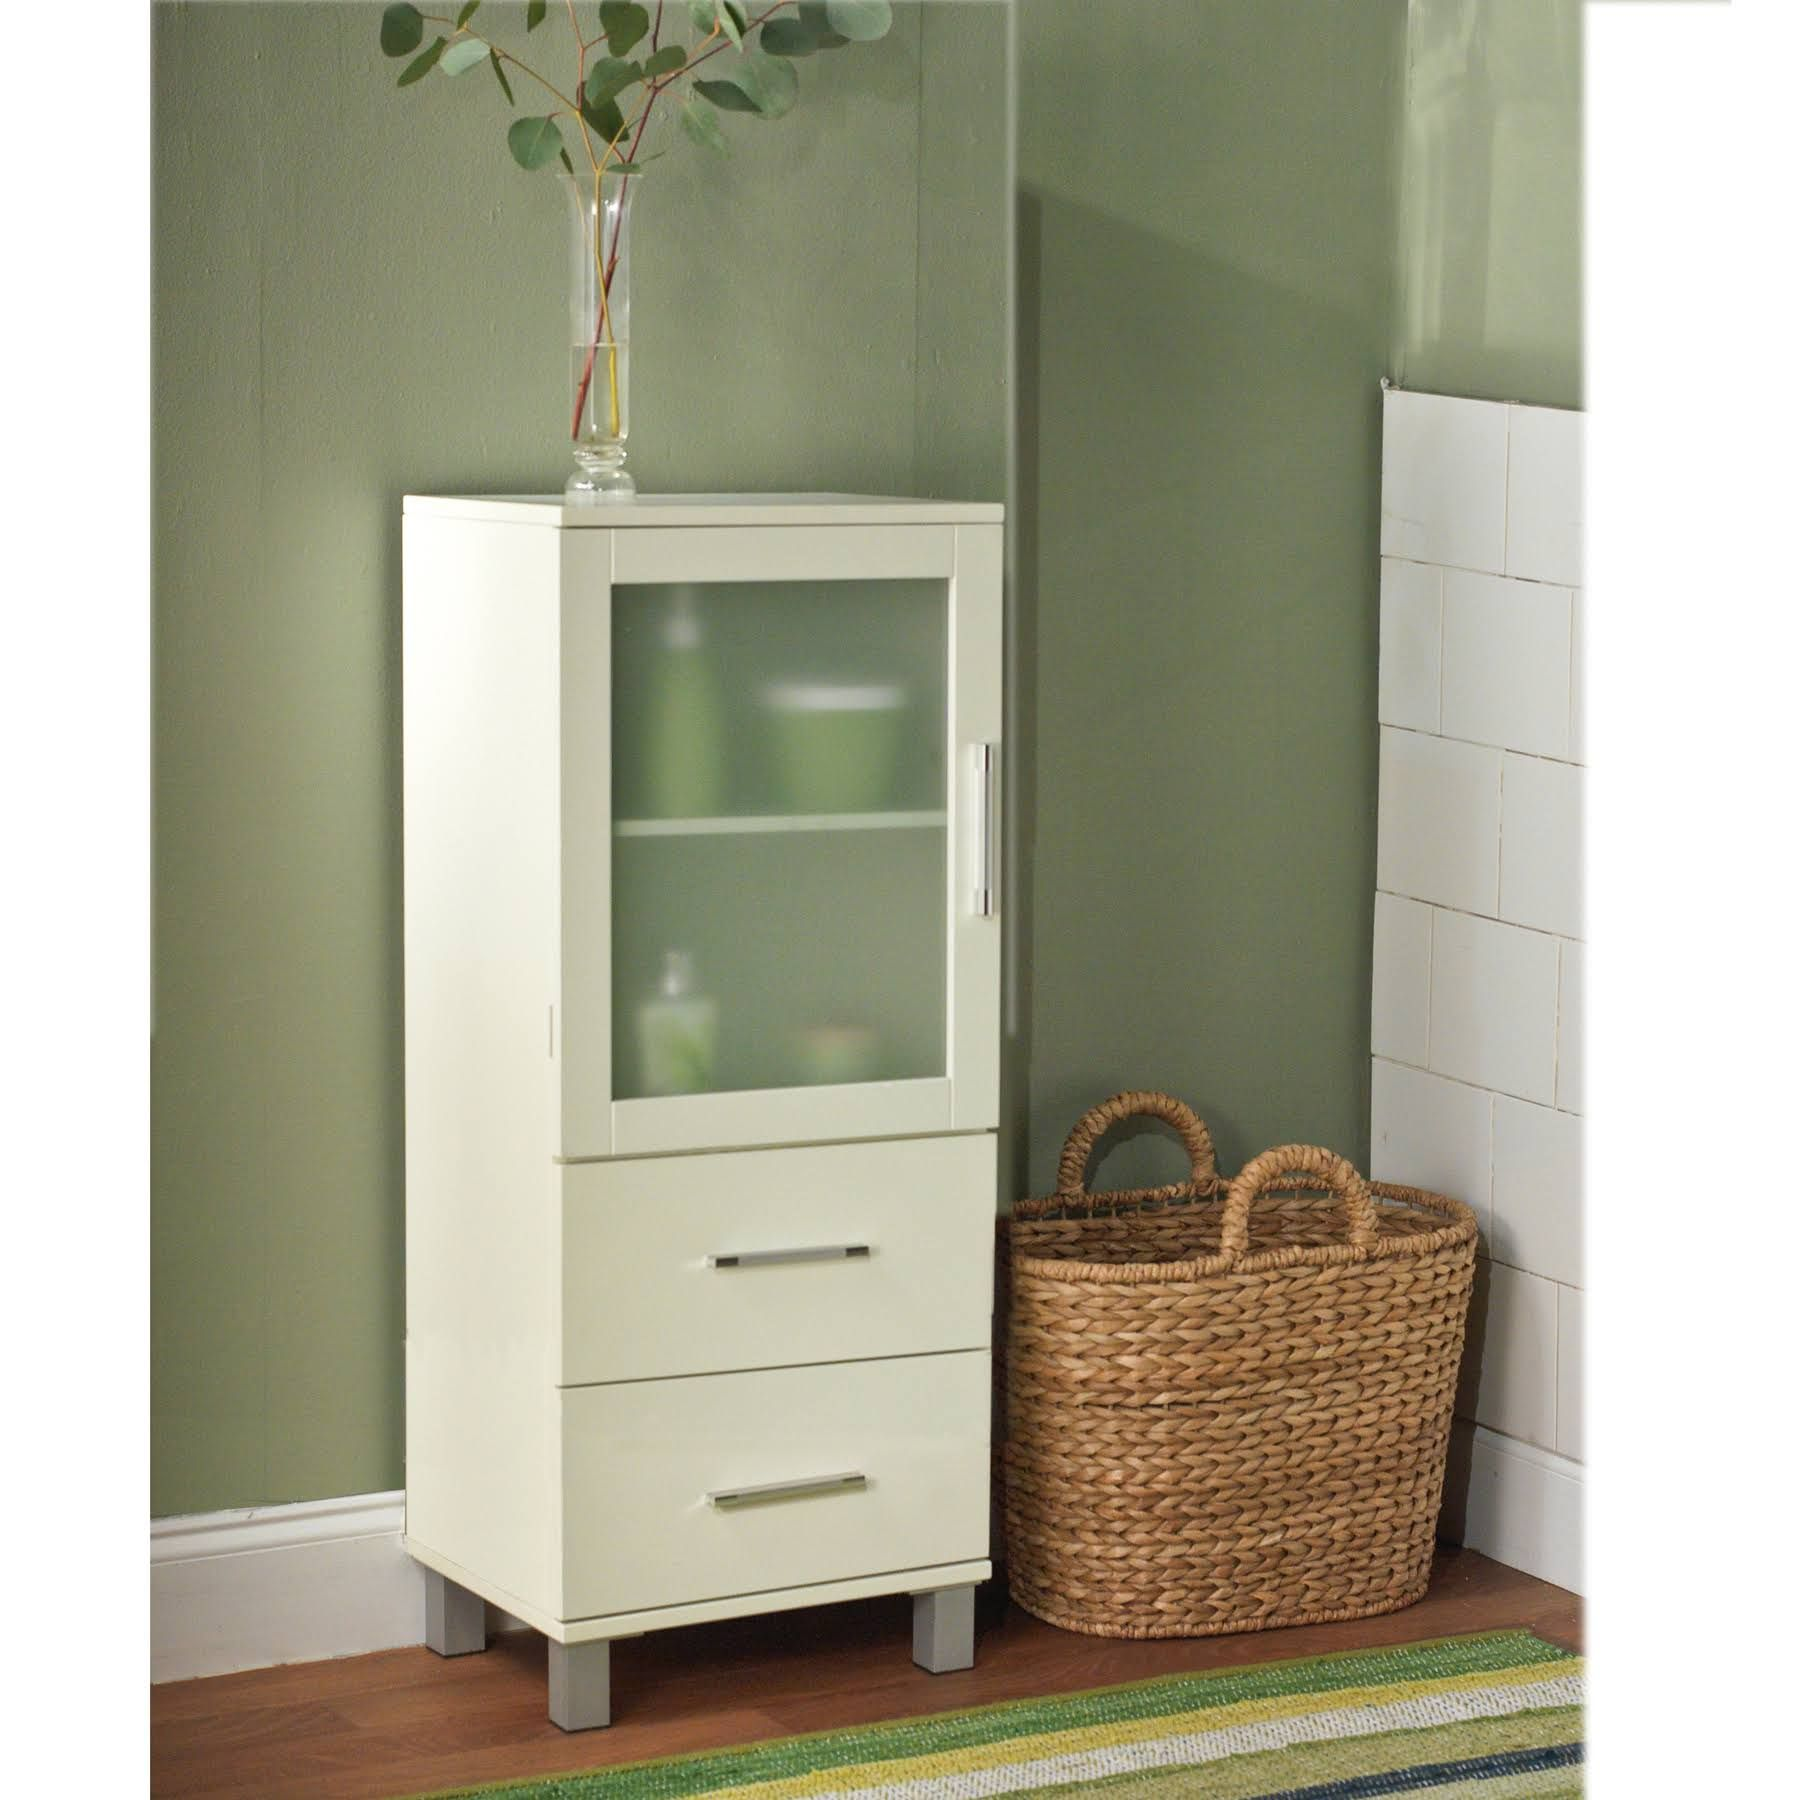 kmart Frosted Pane 2 Drawer Linen Cabinet 50029WHR